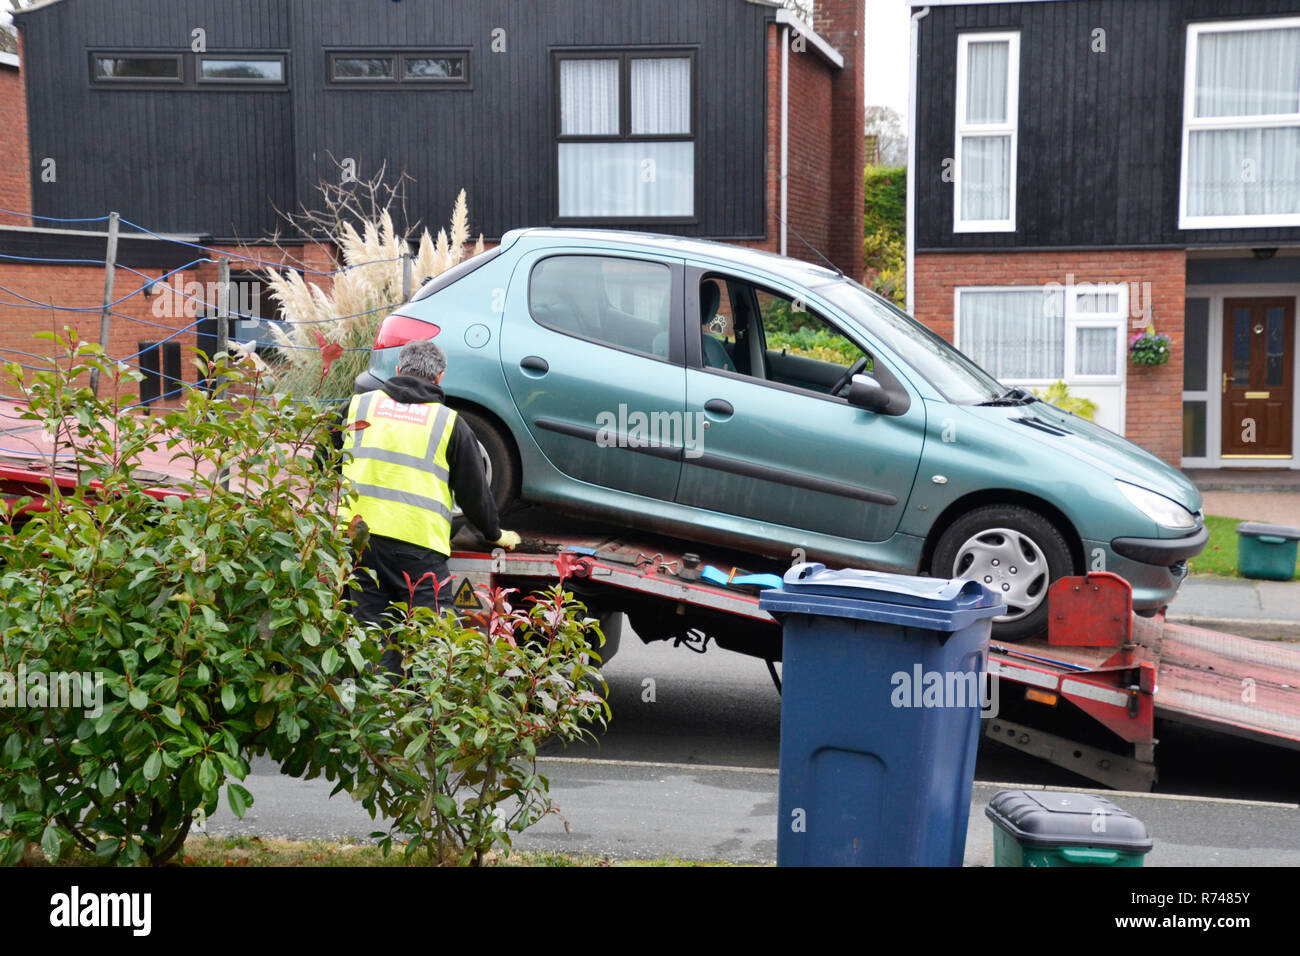 Car being loaded onto lorry, destined for the scrap yard, recycling, at the end of its life - Stock Image